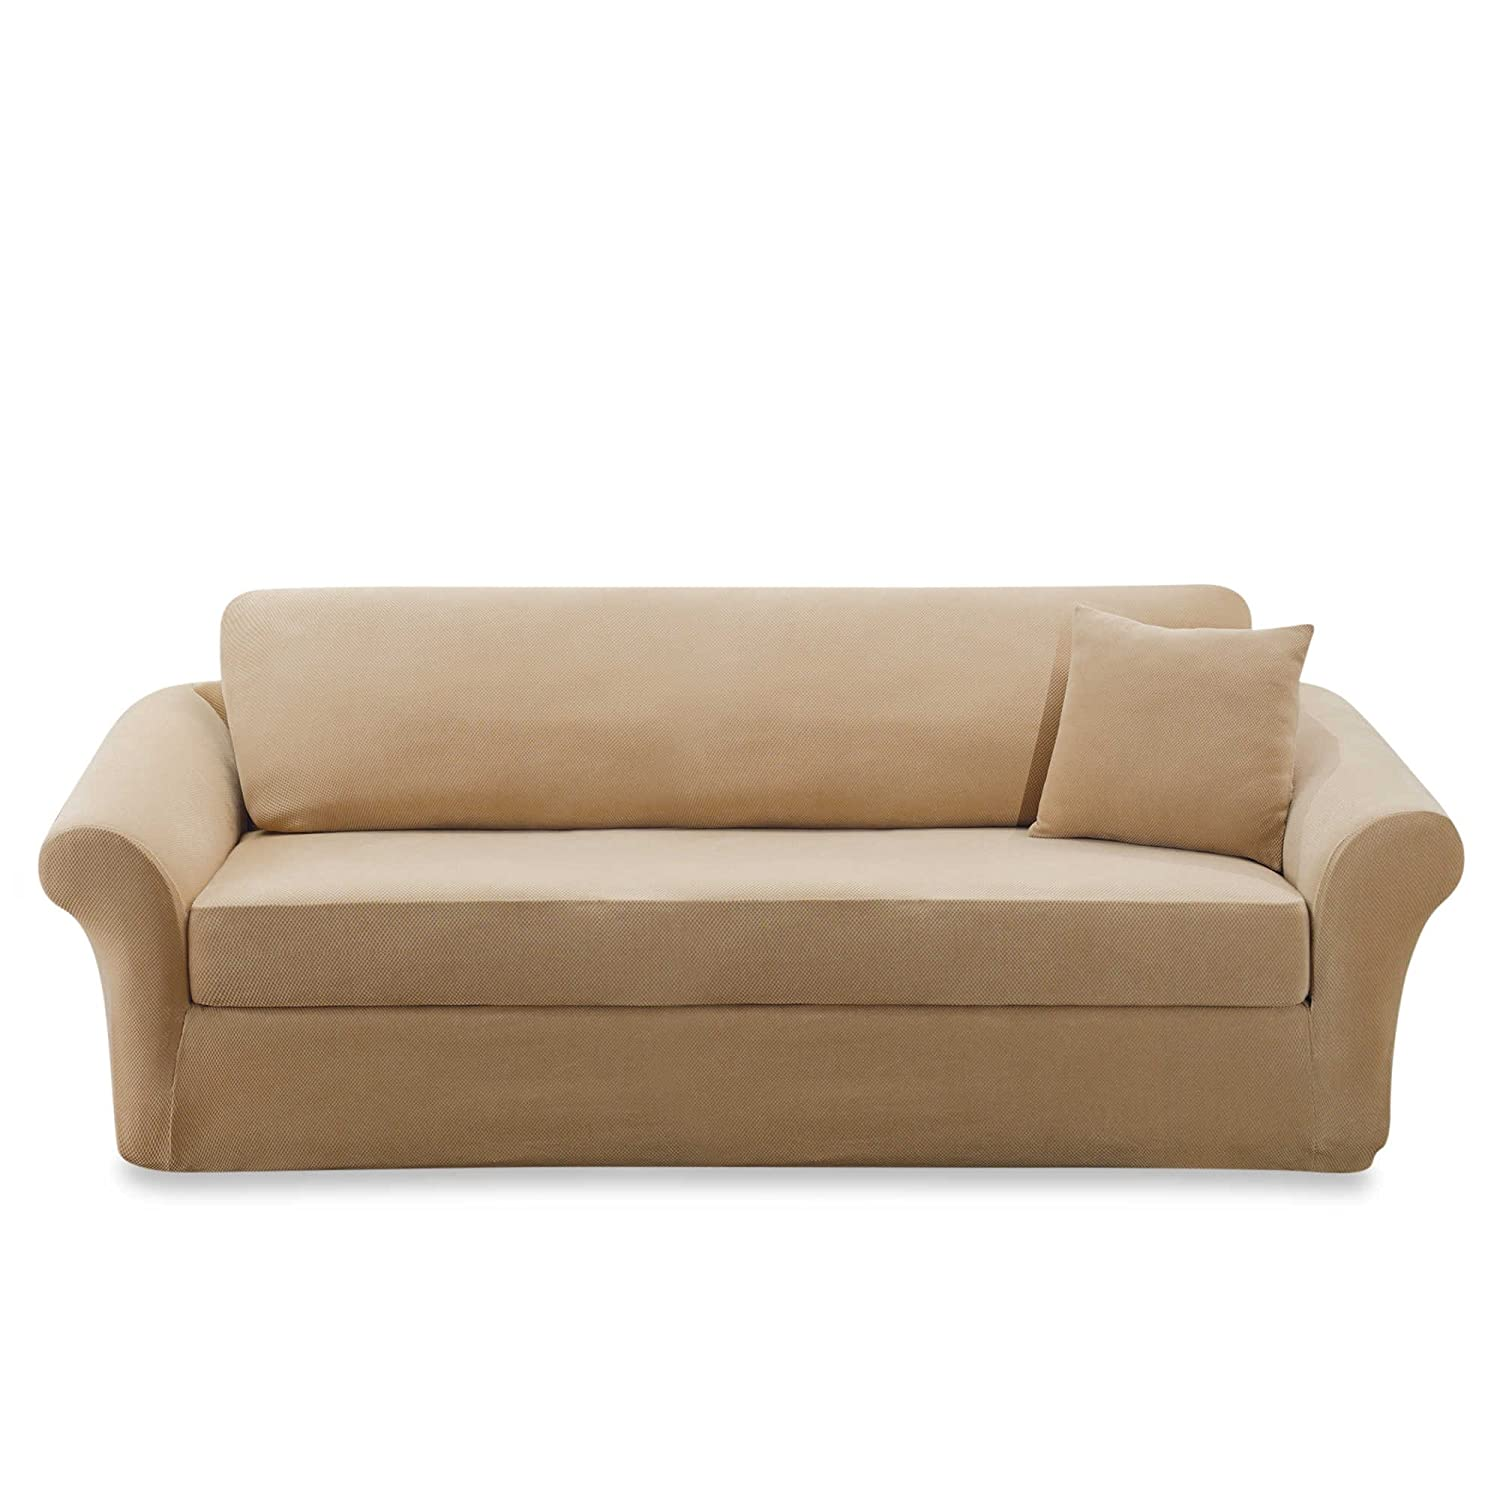 Amazon.com: Sure Fit Stretch Sterling 3-Piece Sofa Slipcover (CREAM ...